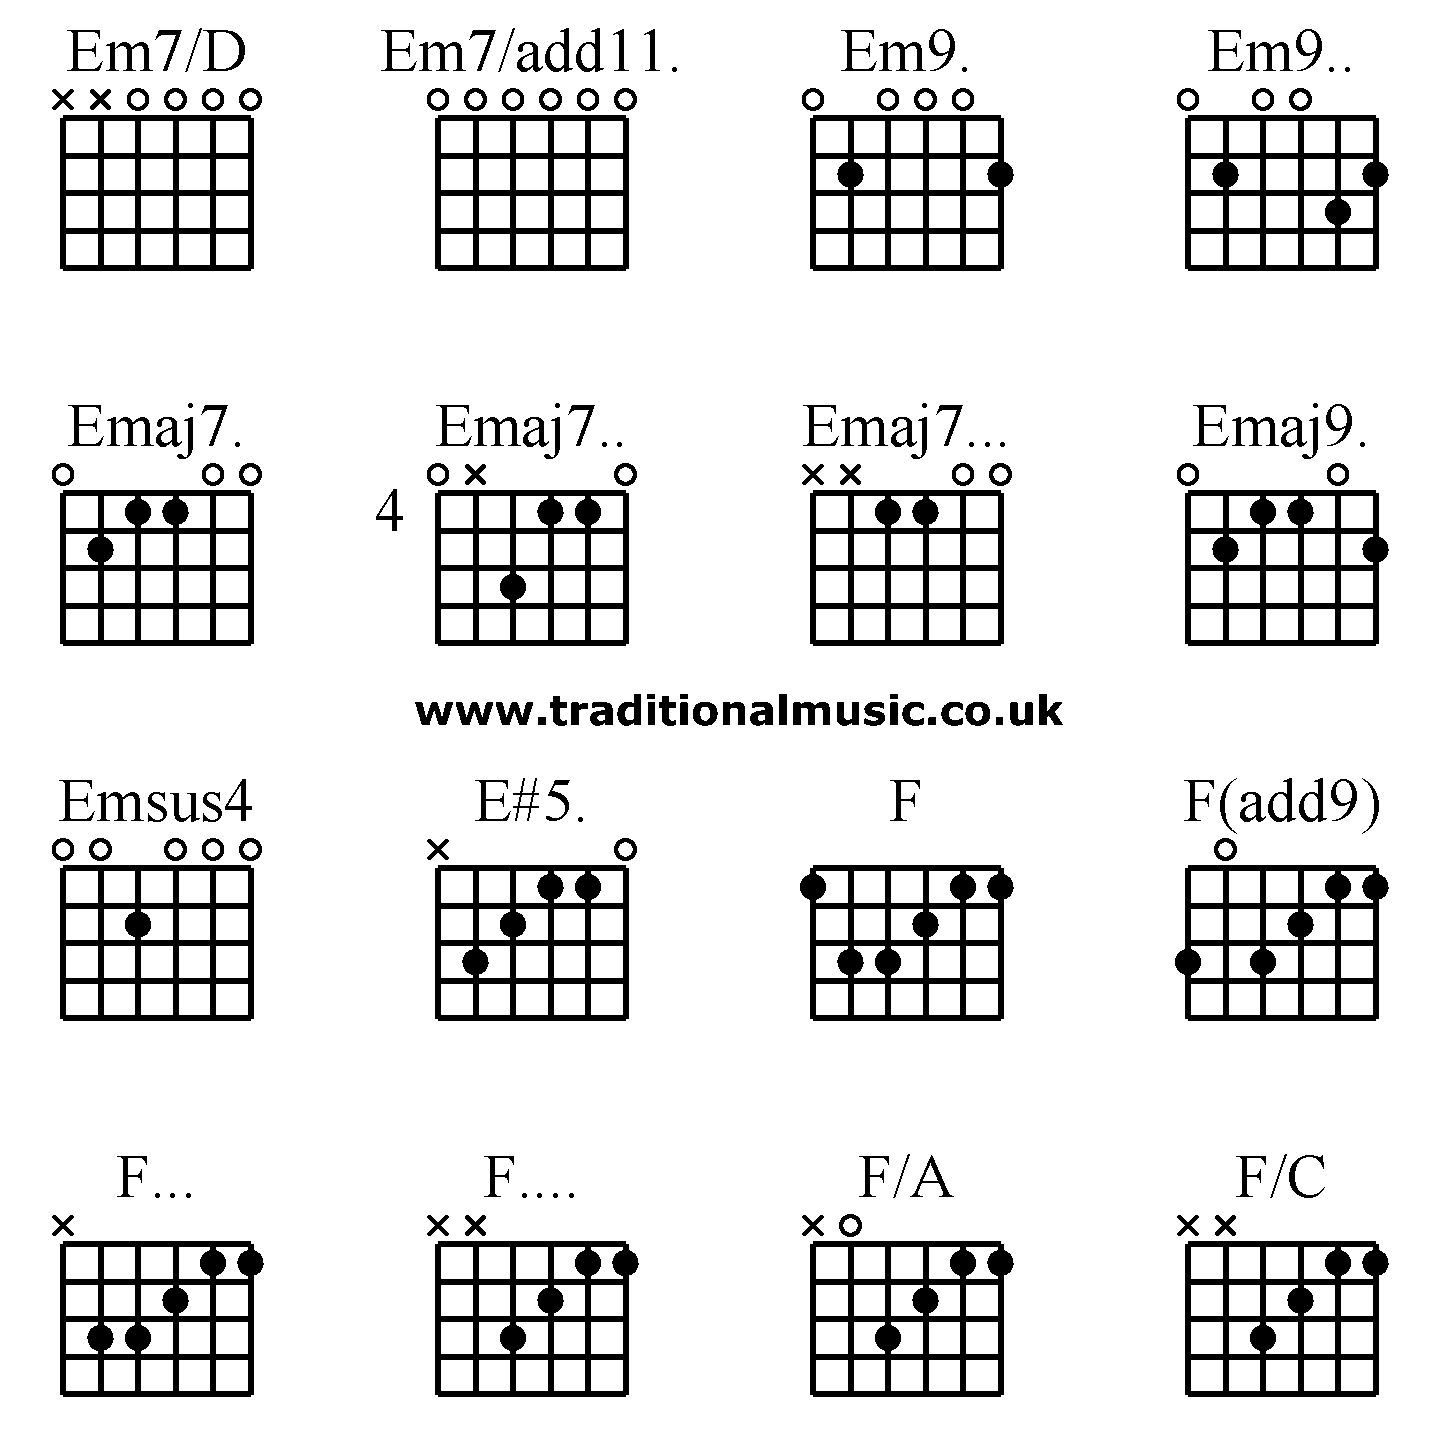 guitar chords advanced em7 d em7 add11 em9 em9 emaj7 emaj7